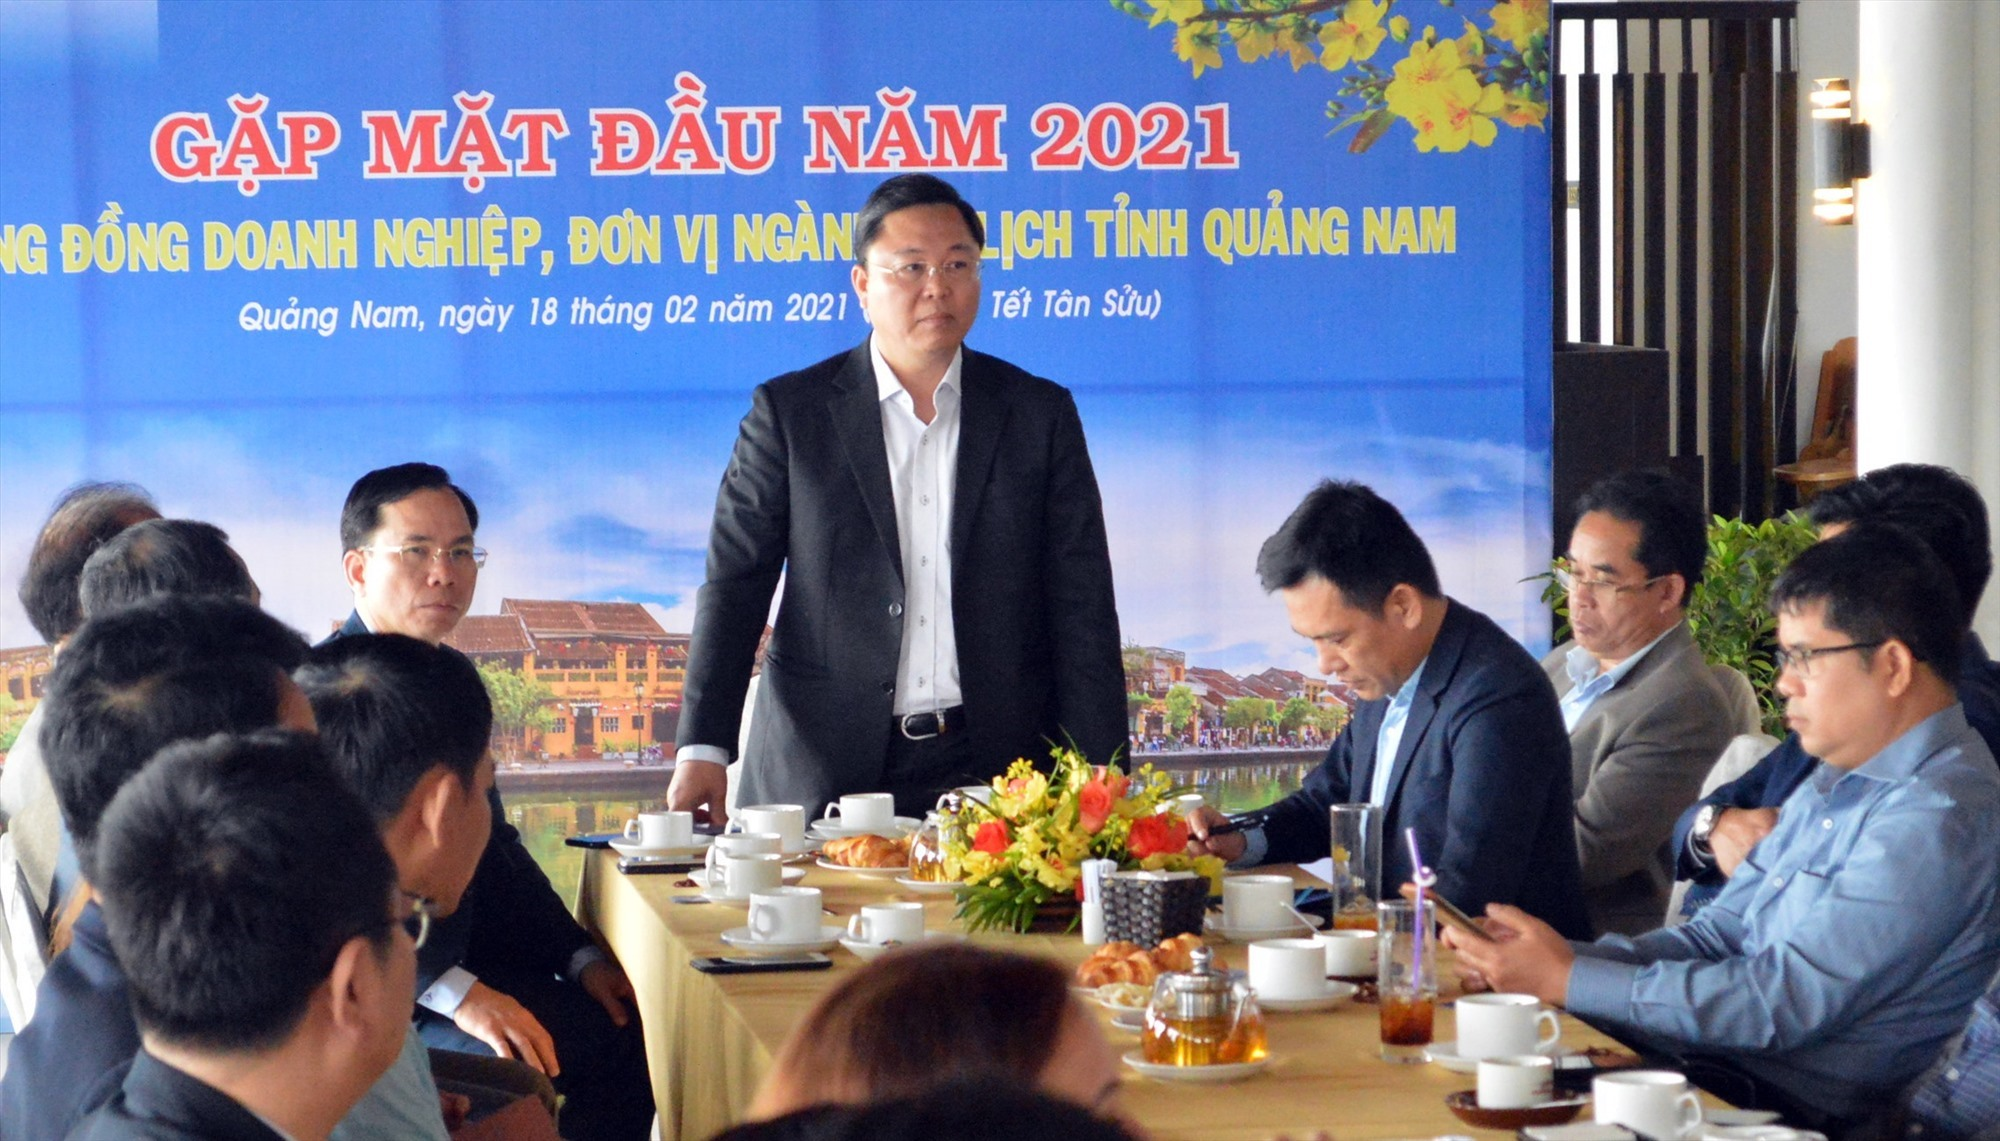 Mr. Le Tri Thanh at the meeting with tourism businesses